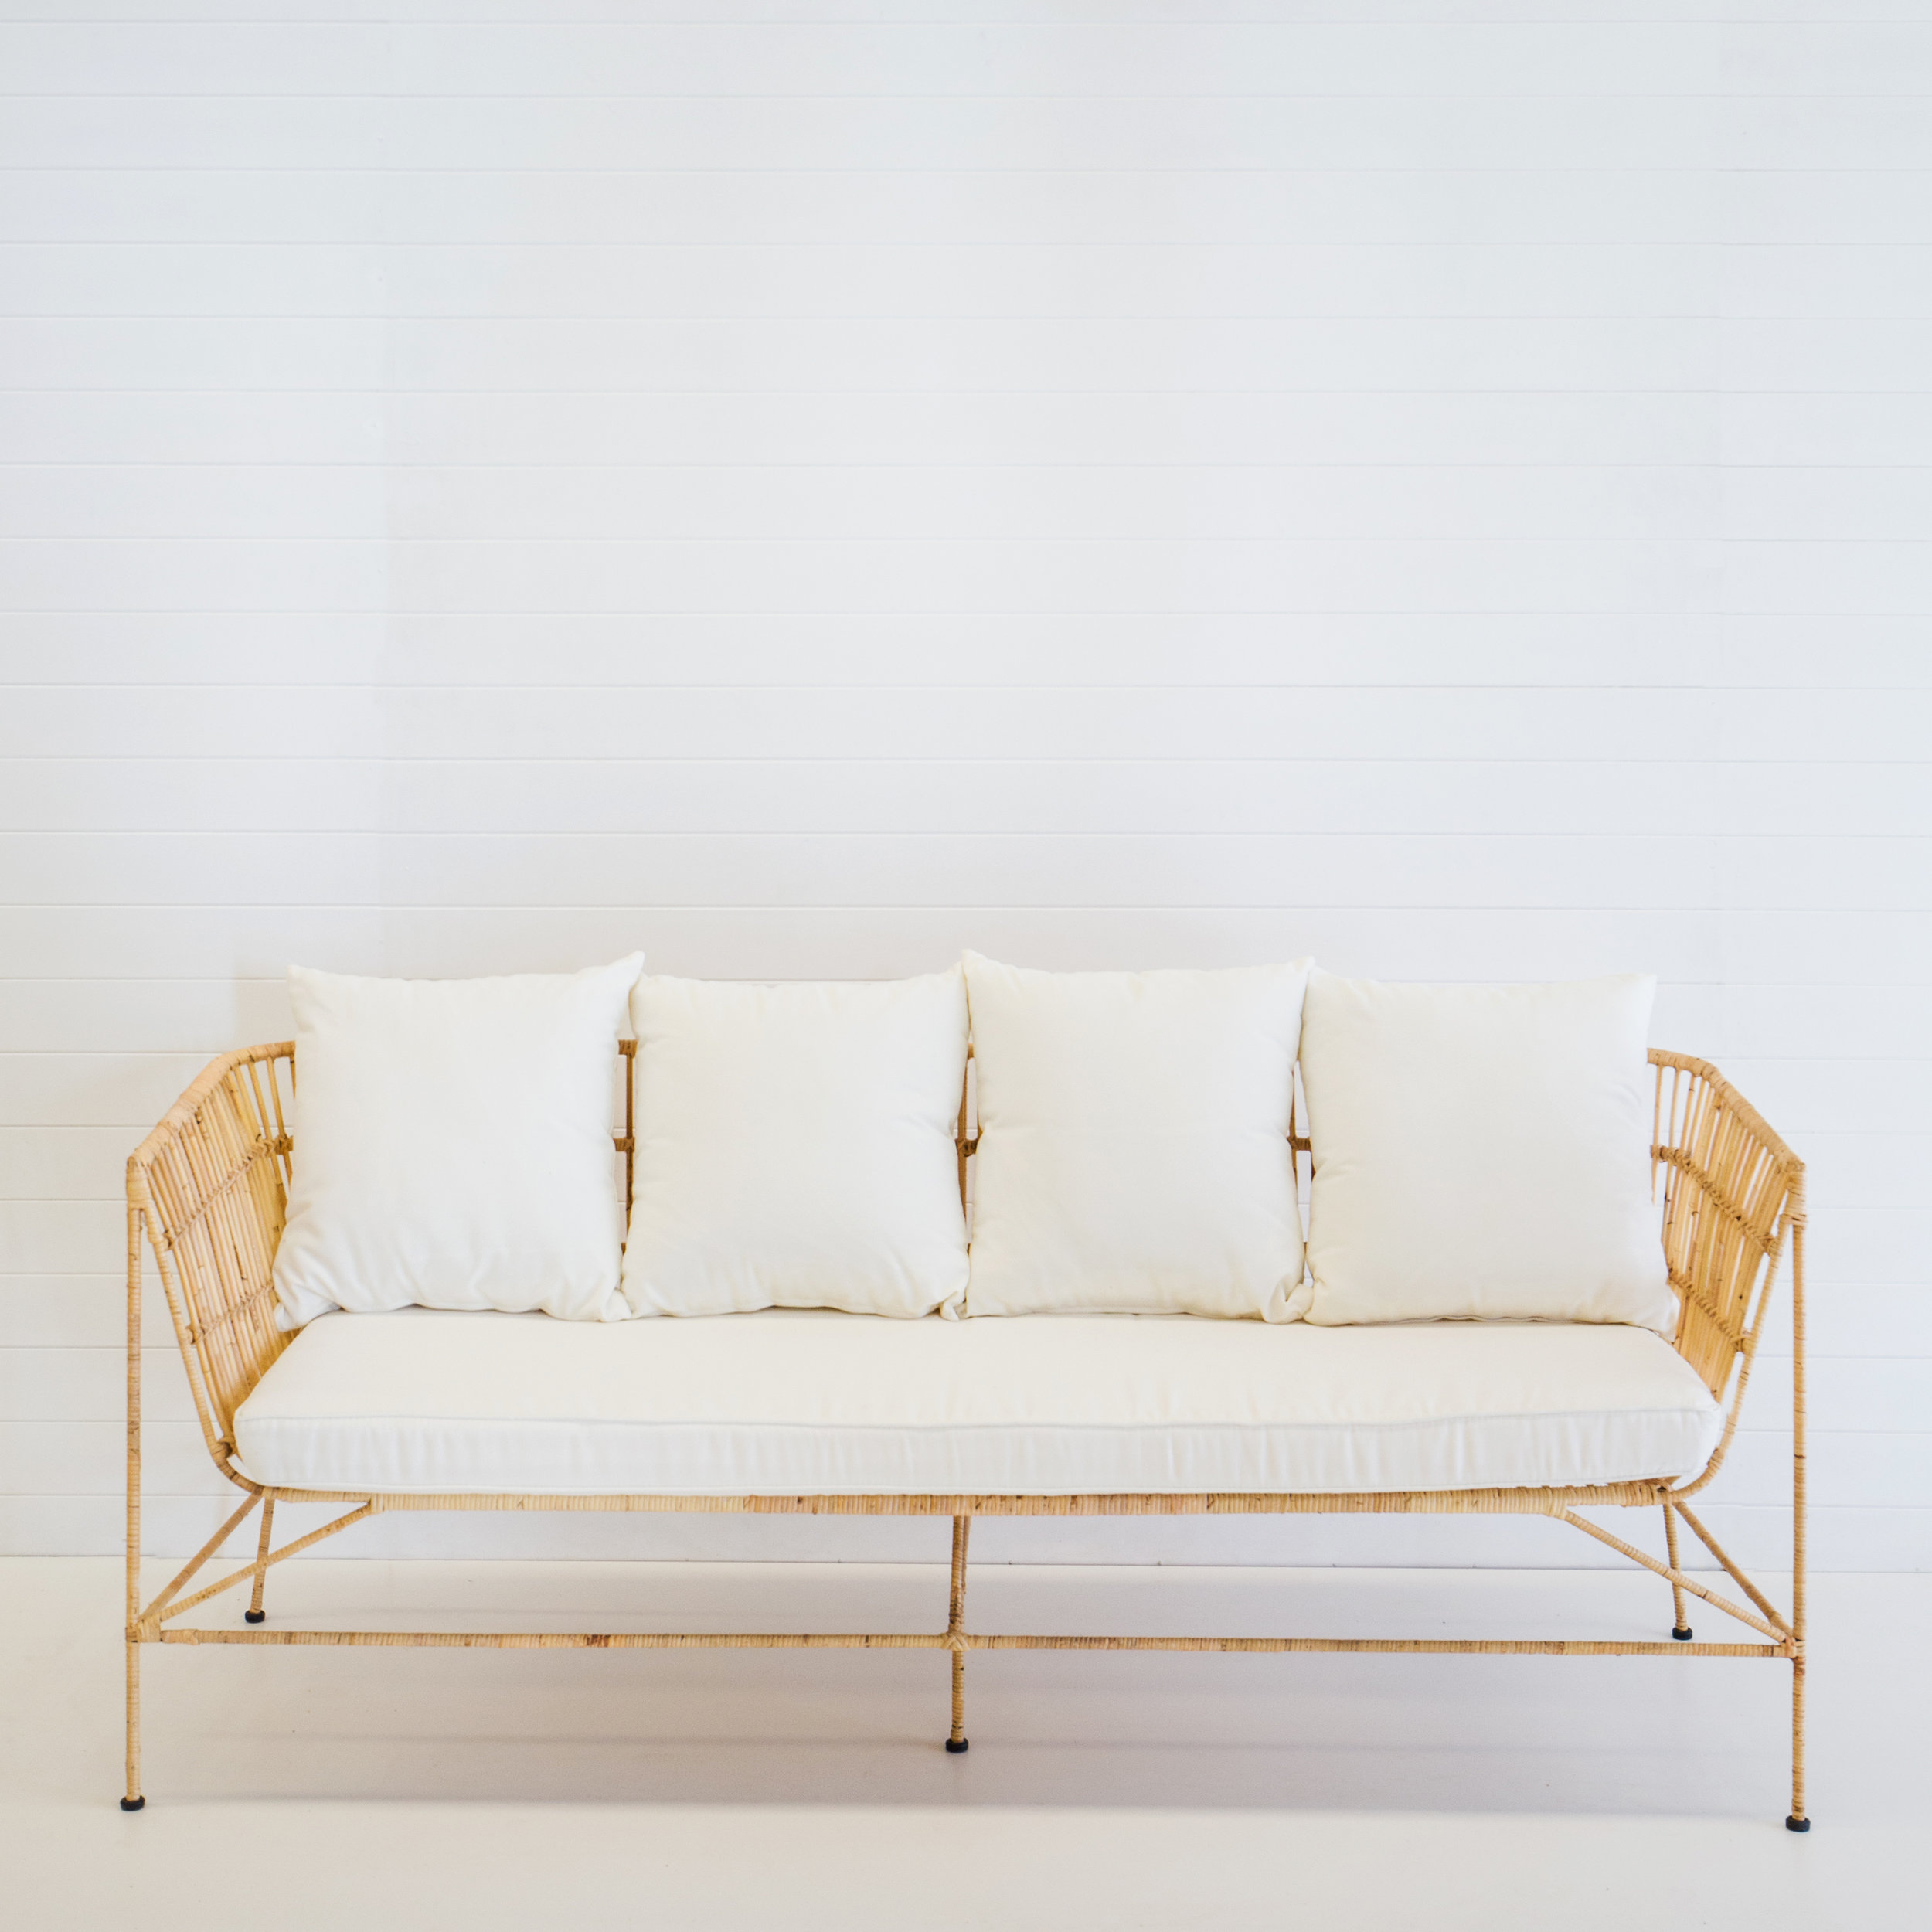 Indie natural 3-seater sofa with white cushions